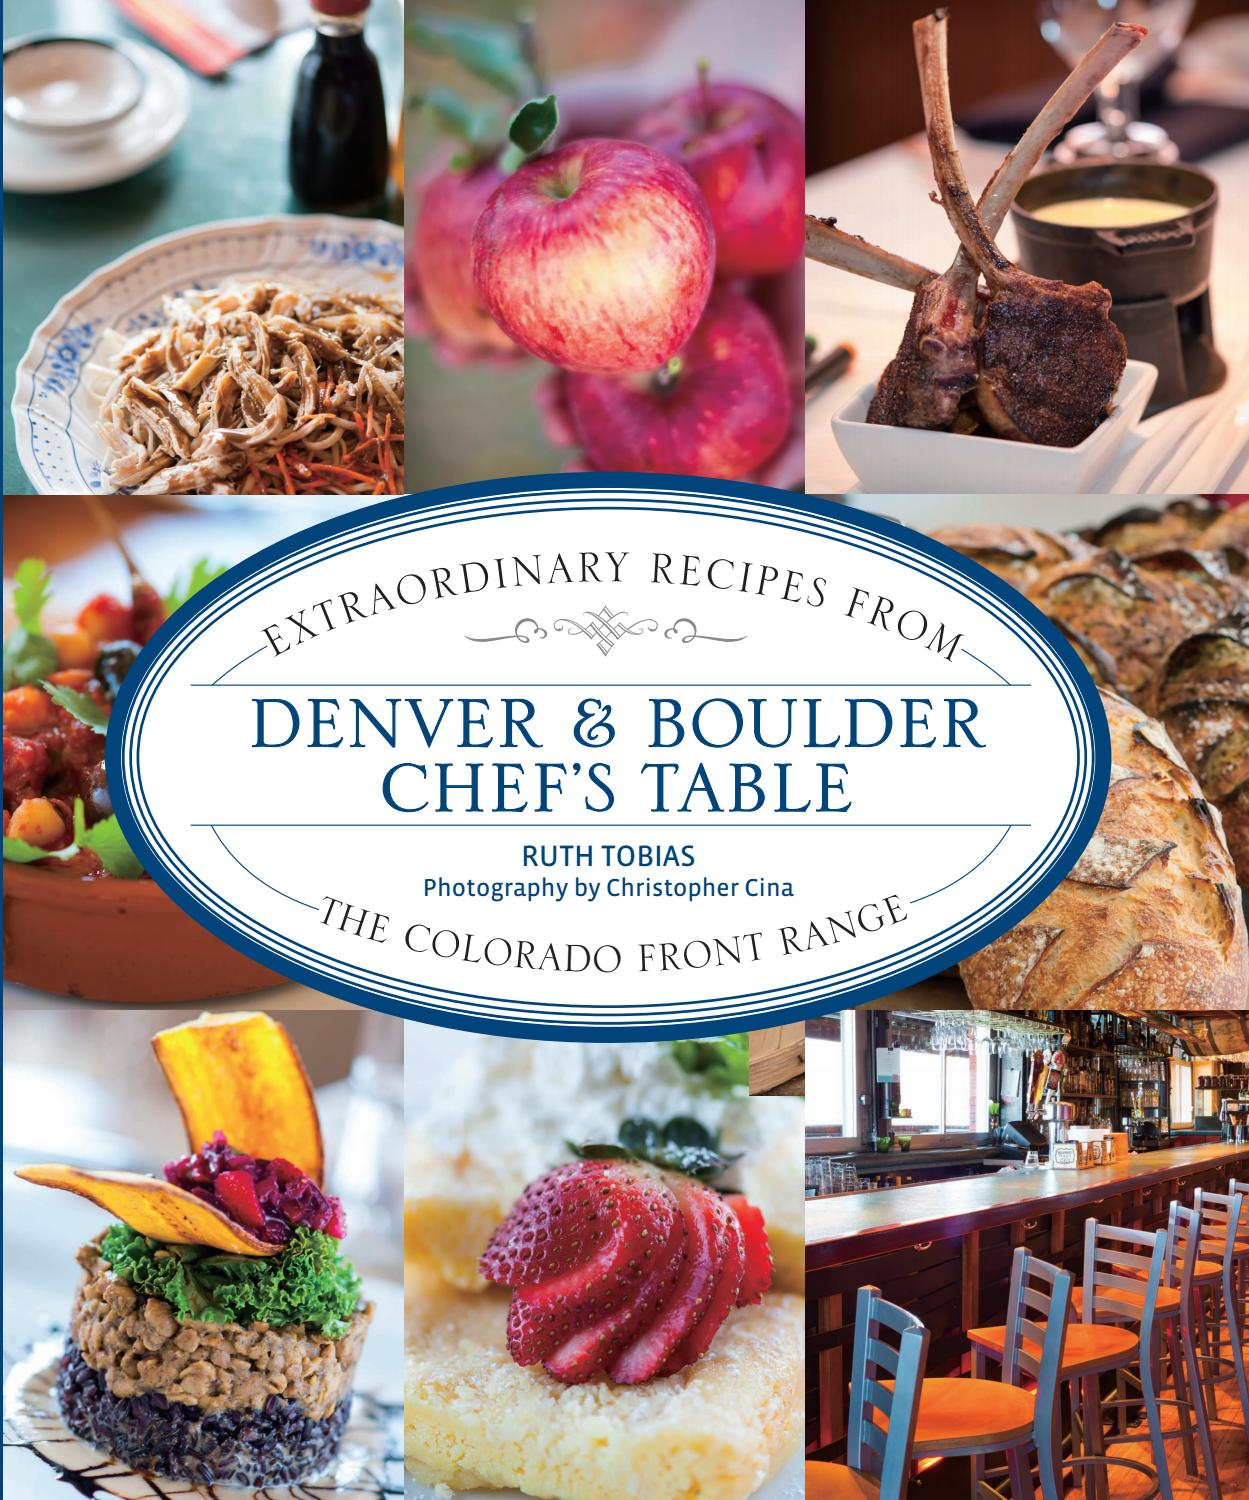 Chefs Table Denver And Boulder Extraordinary Recipes By Manoel De Oliveira Issuu